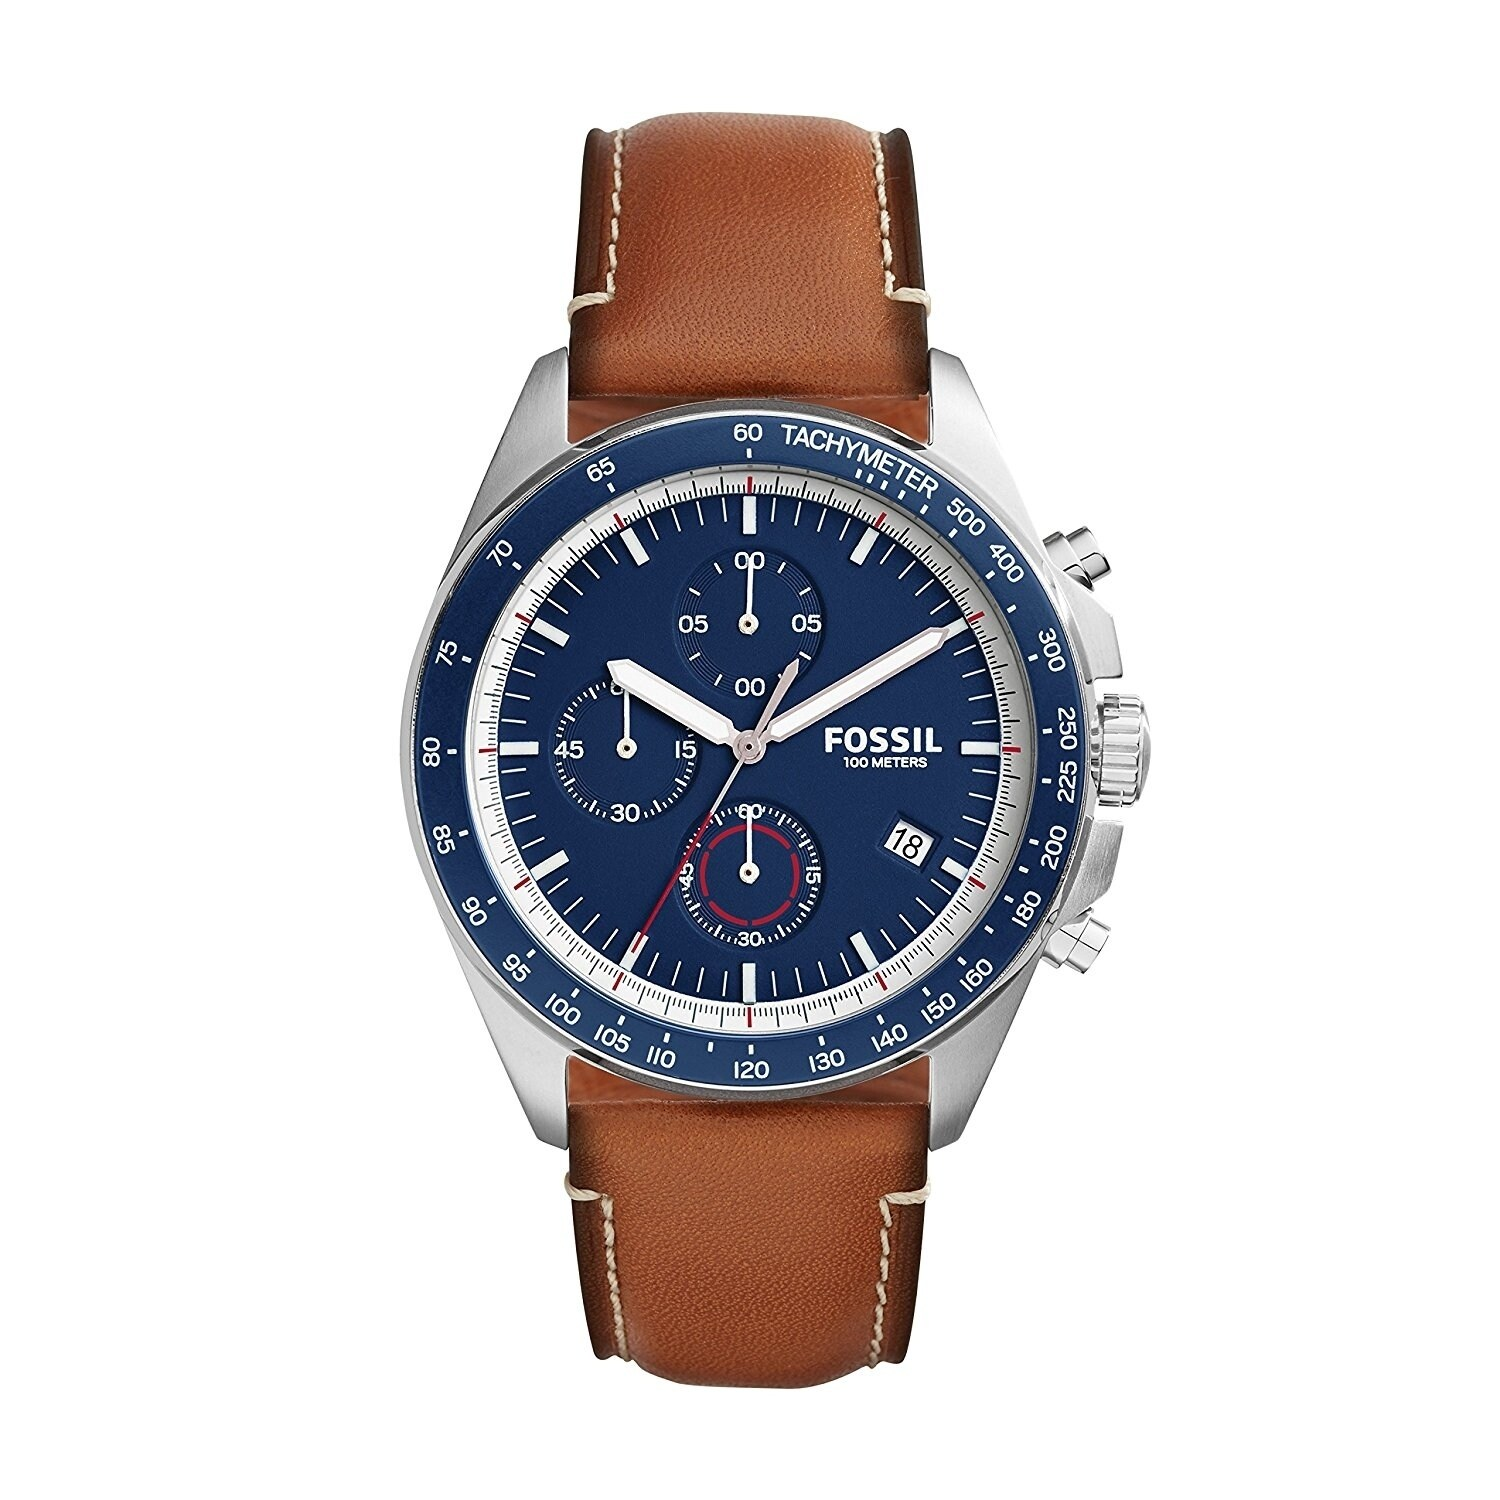 7db7456b874 Shop Fossil Men s Sport 54 Chronograph Blue Dial Brown Leather Watch ...